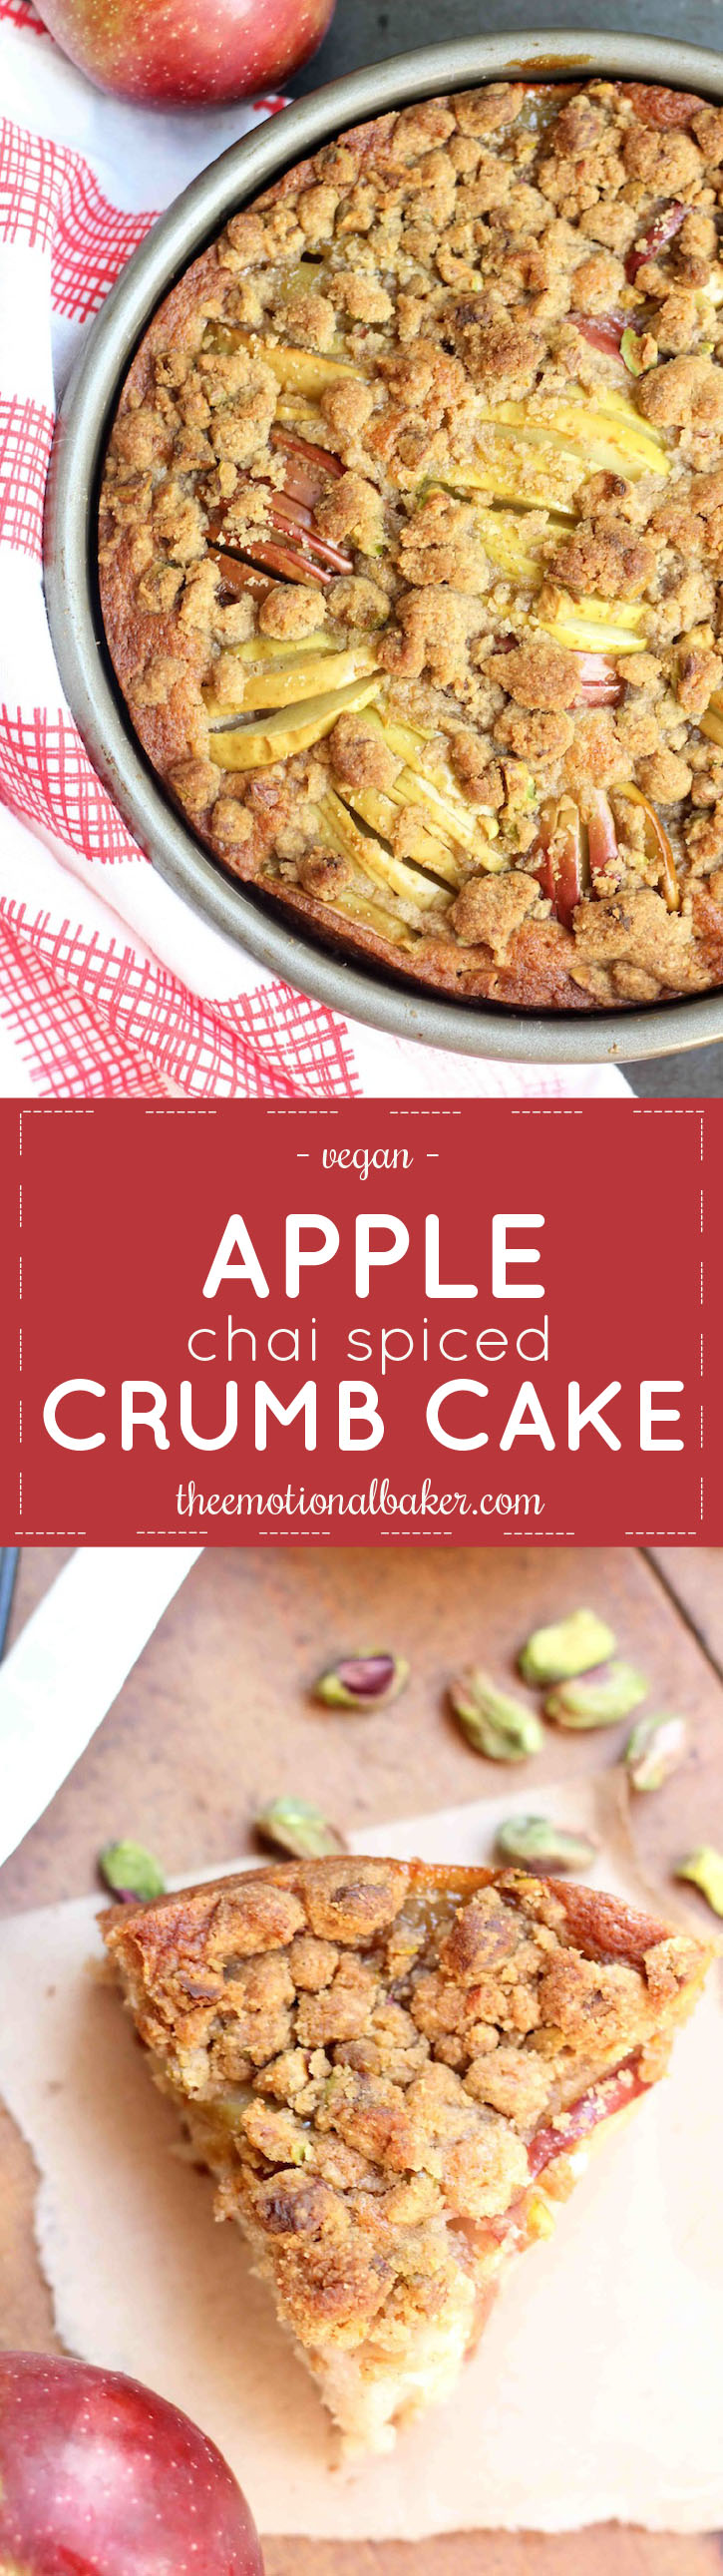 This Apple Cake is packed with flavor and perfect for fall. You'll love the chai spices and pistachio crumb topping!